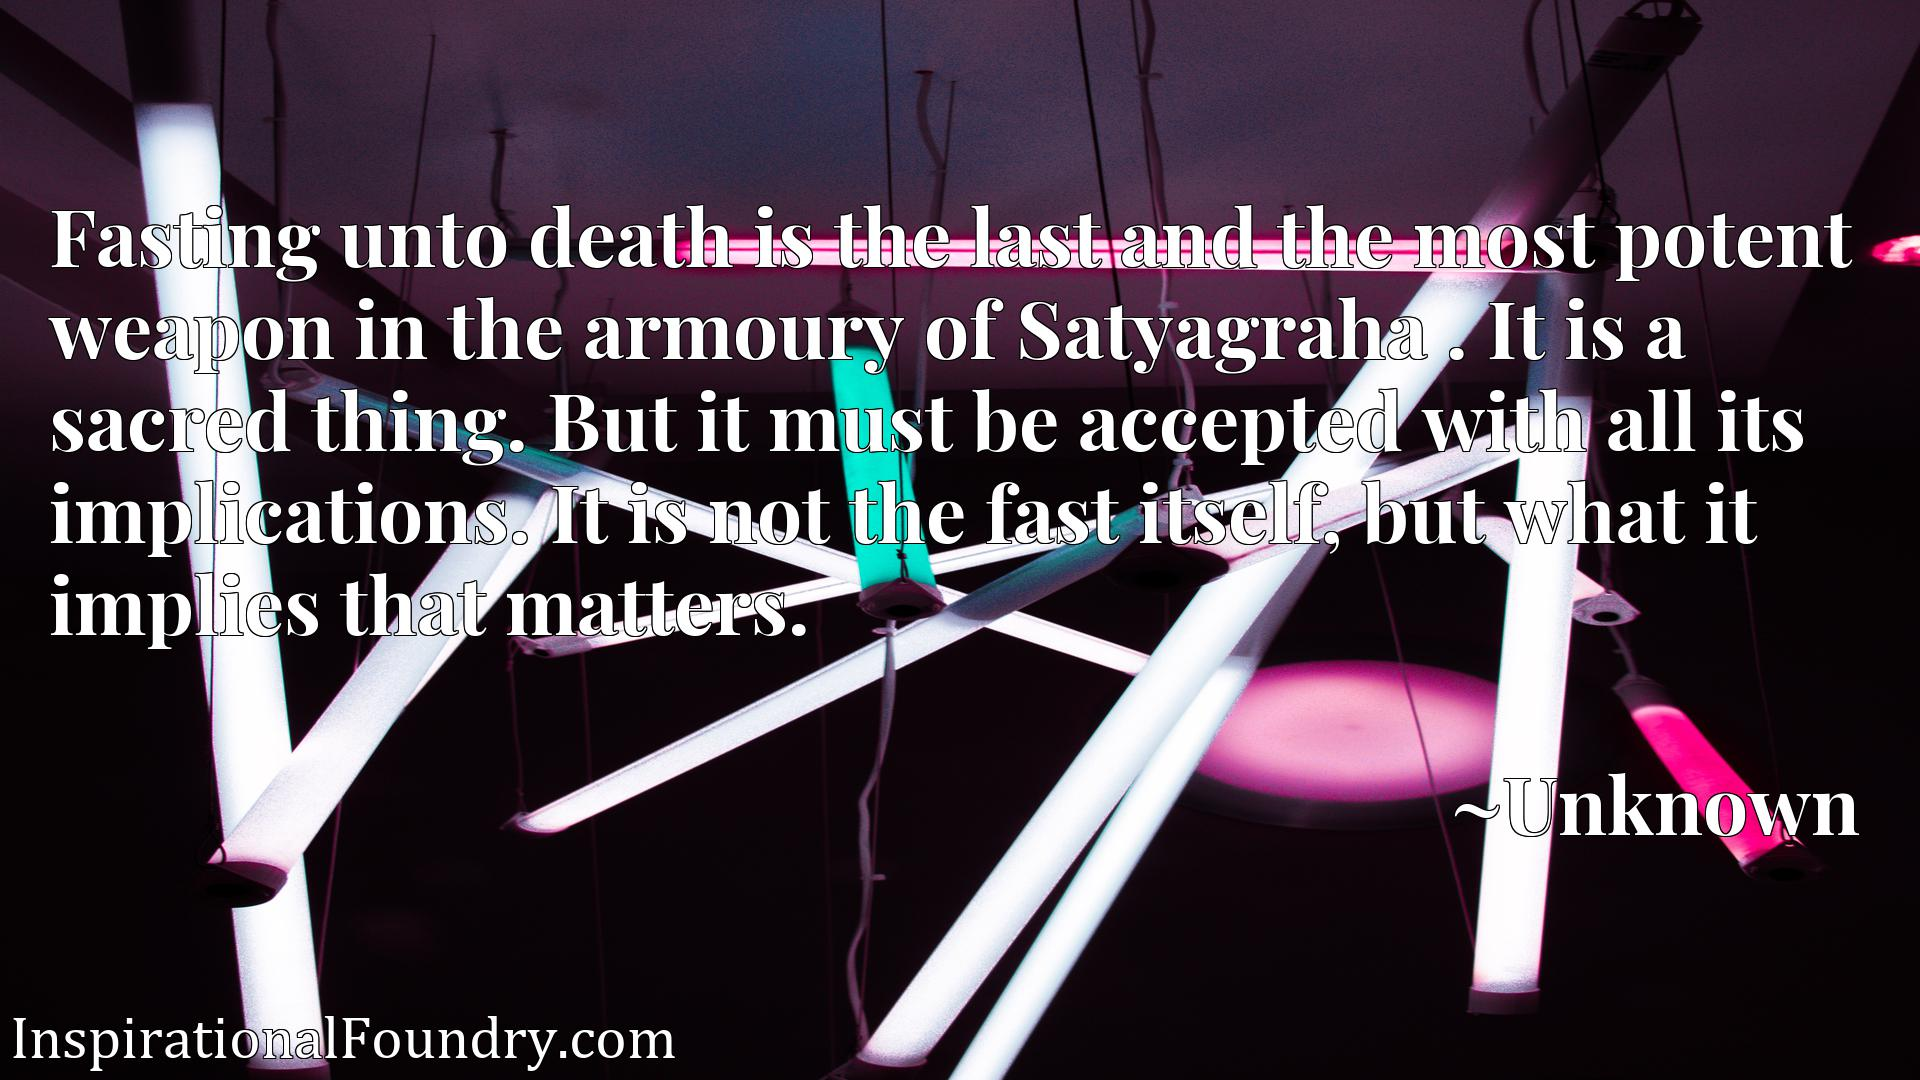 Fasting unto death is the last and the most potent weapon in the armoury of Satyagraha . It is a sacred thing. But it must be accepted with all its implications. It is not the fast itself, but what it implies that matters.